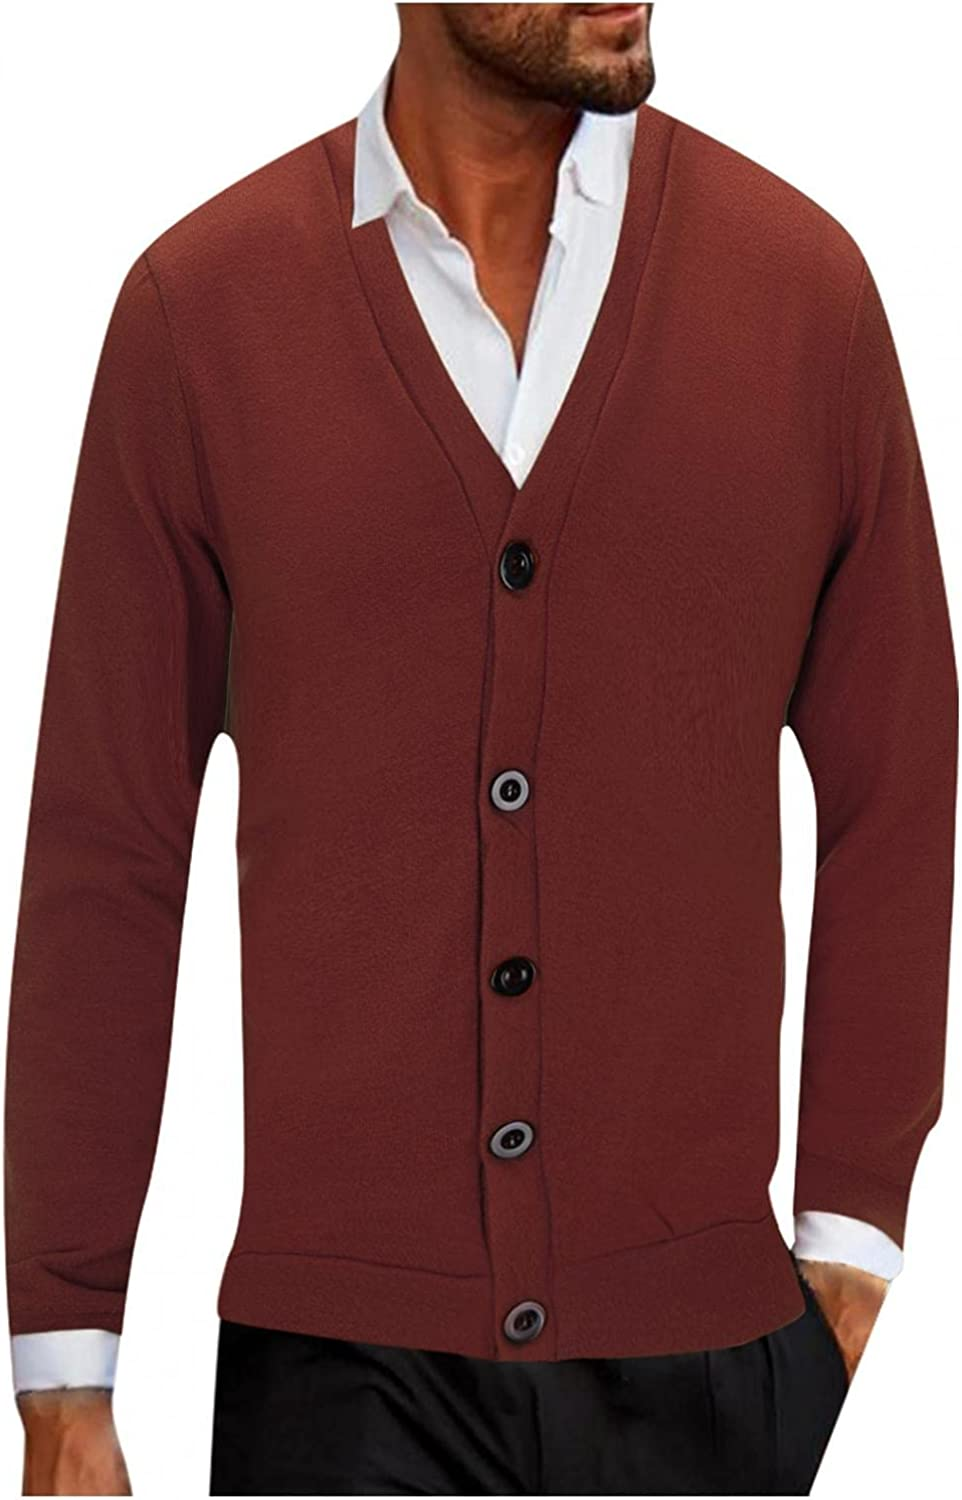 SUIQU Mens Button Knit Cardigan Autumn and Winter Solid Color Casual Loose V Neck Long Sleeve Knited Blouse Top Outwear